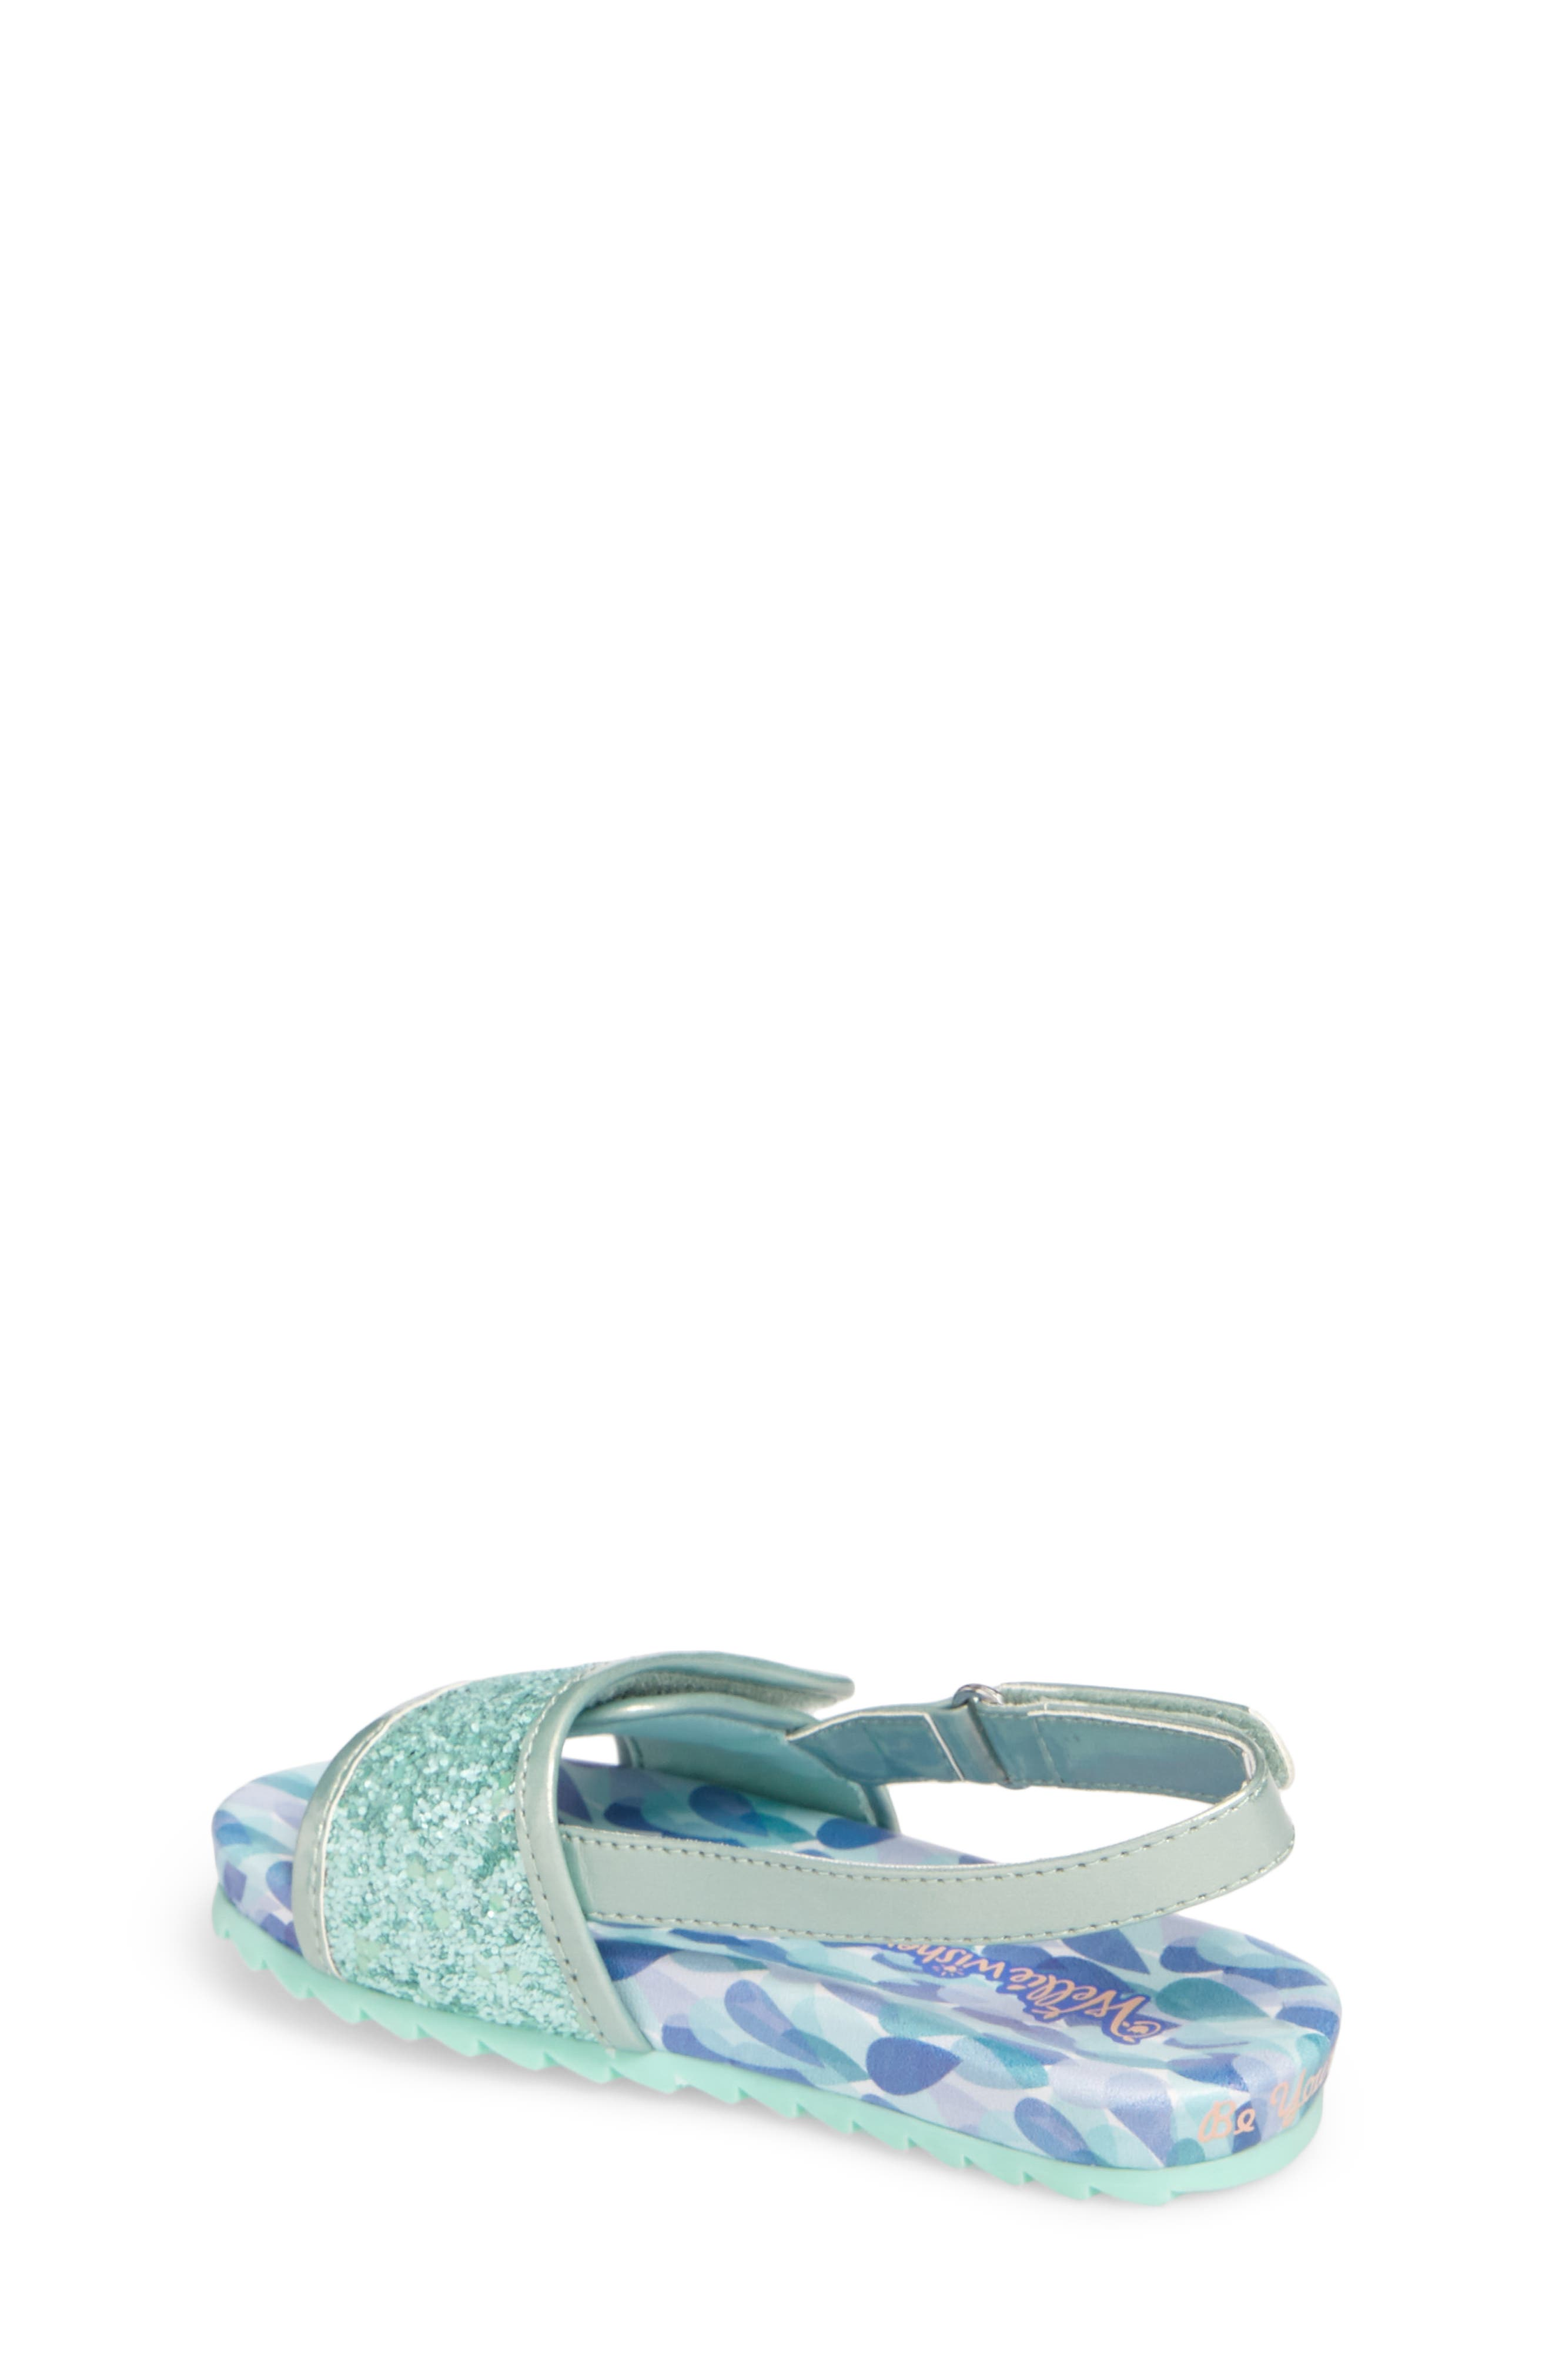 WELLIEWISHERS FROM AMERICAN GIRL,                             Camille Raindrop Strap Sandal,                             Alternate thumbnail 2, color,                             300